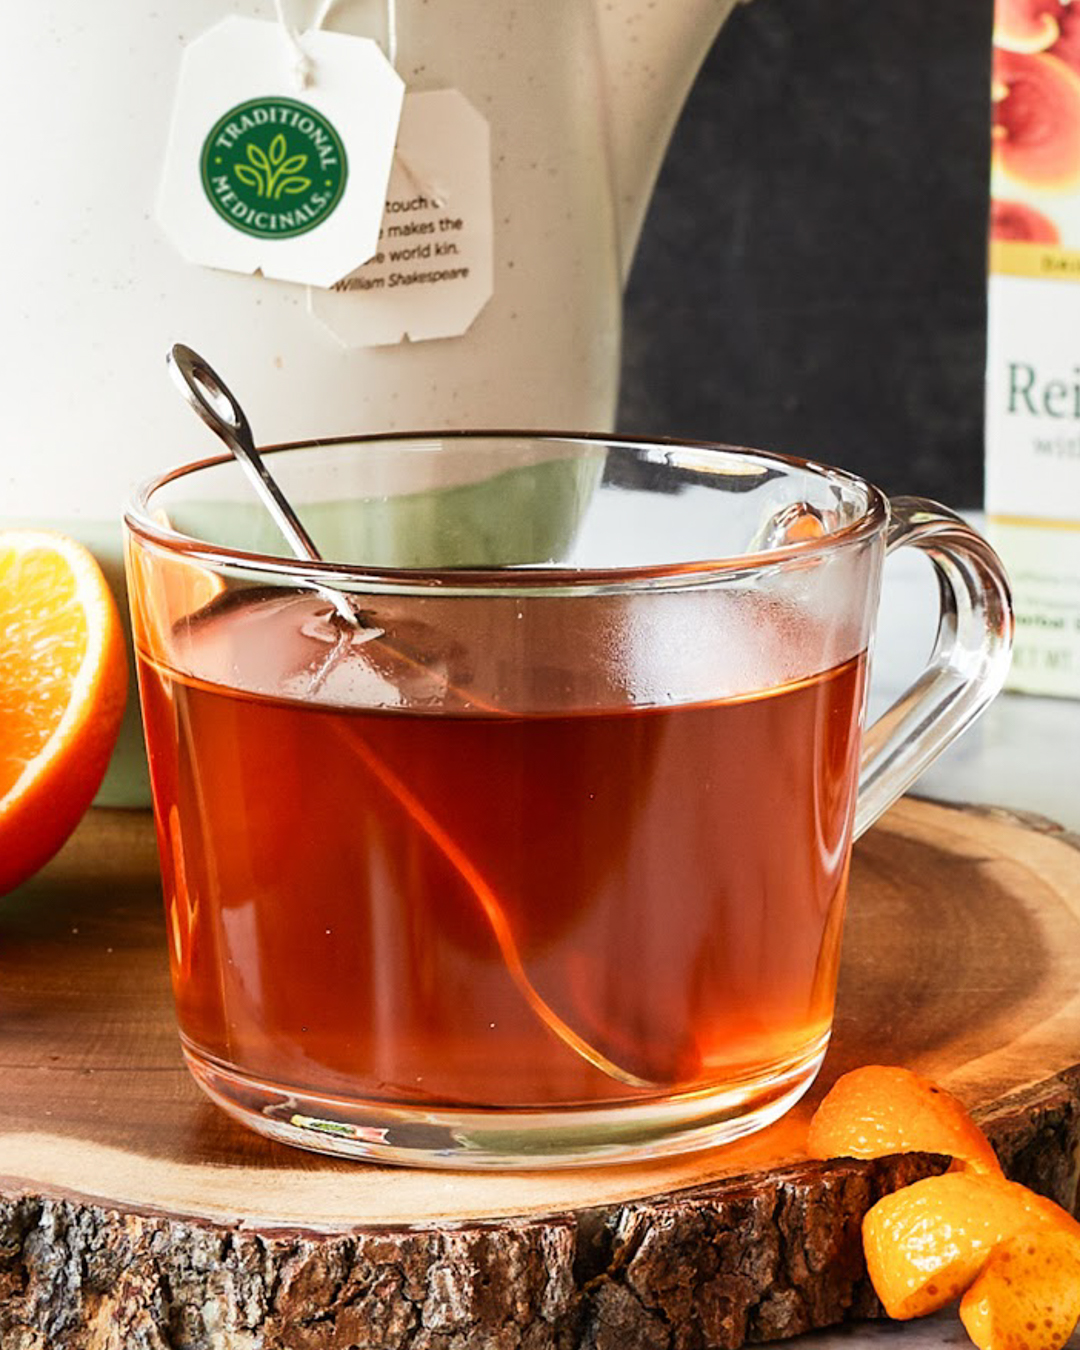 Reishi Mushroom with Rooibos and Orange Peel – Traditional Medicinals